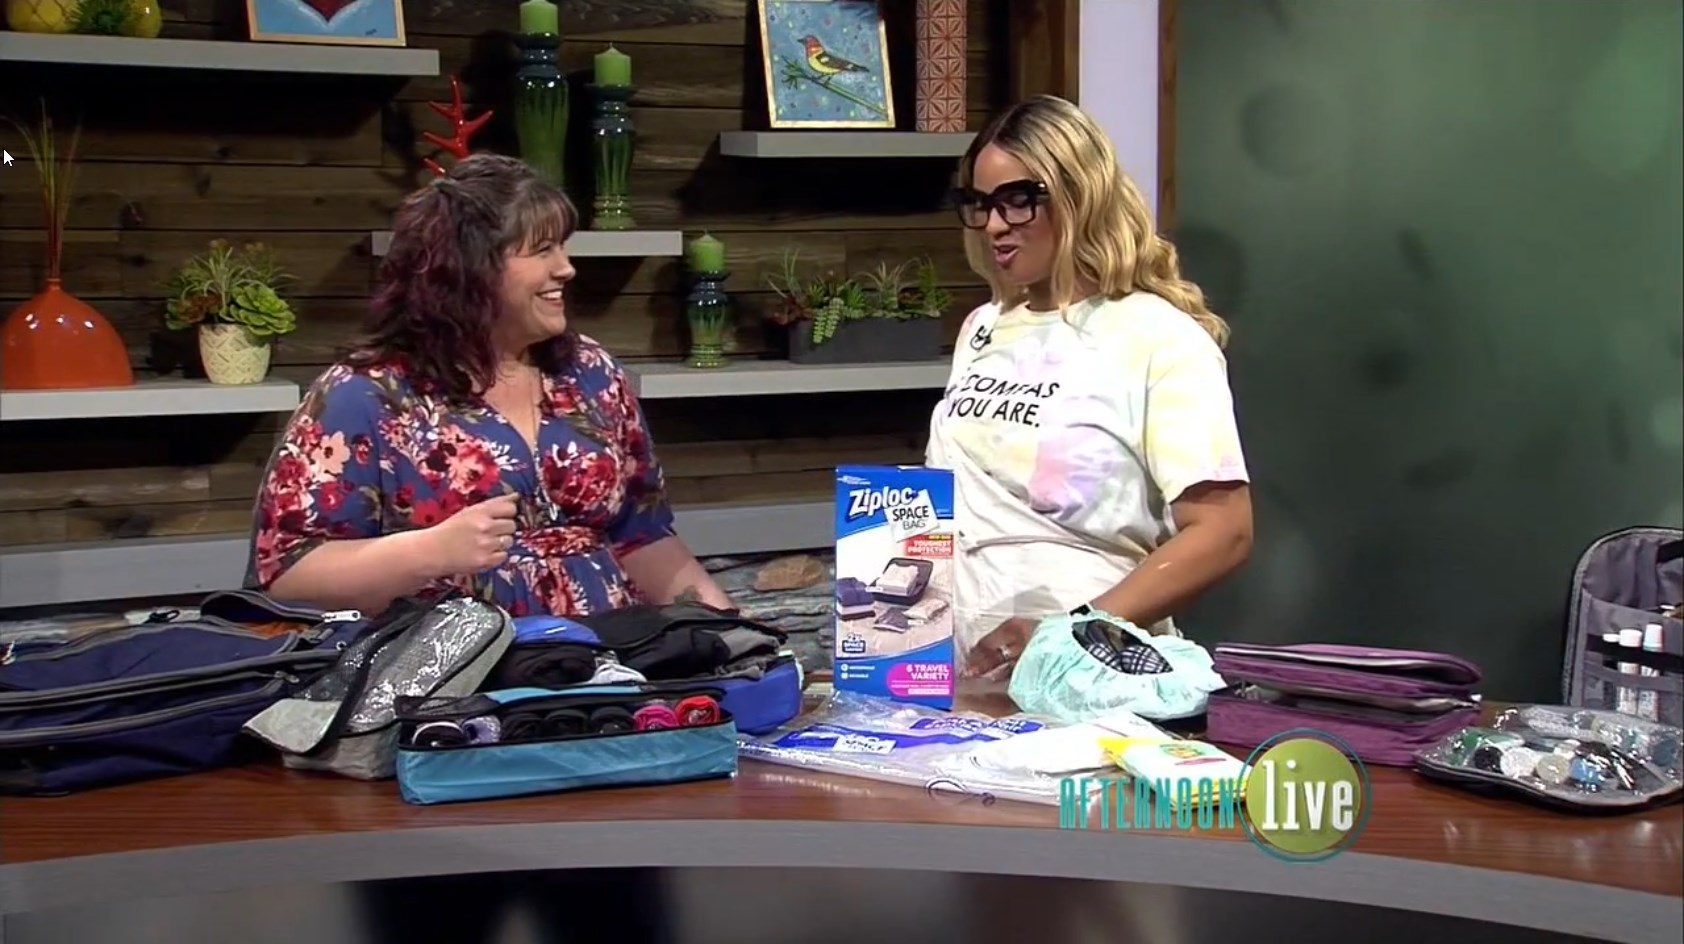 KATU Afternoon Live (06/14/2019) Plus Size Packing Tips! - DivineMrsDiva.com